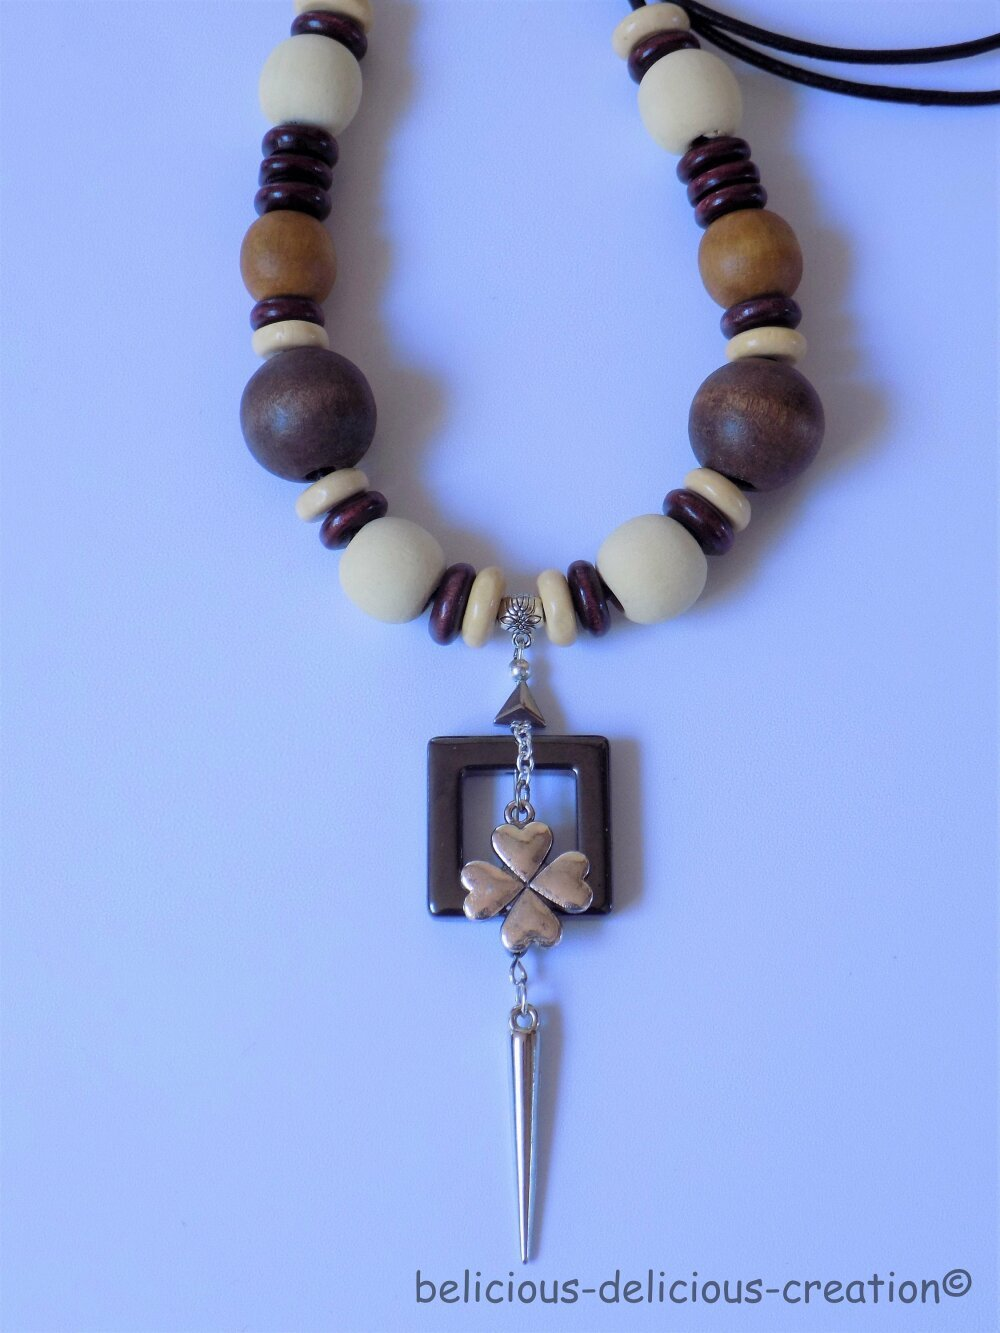 Original Collier homme  long 98cm !! LUCKY !! avec perles en bois marron beige belicious-delicious-creation